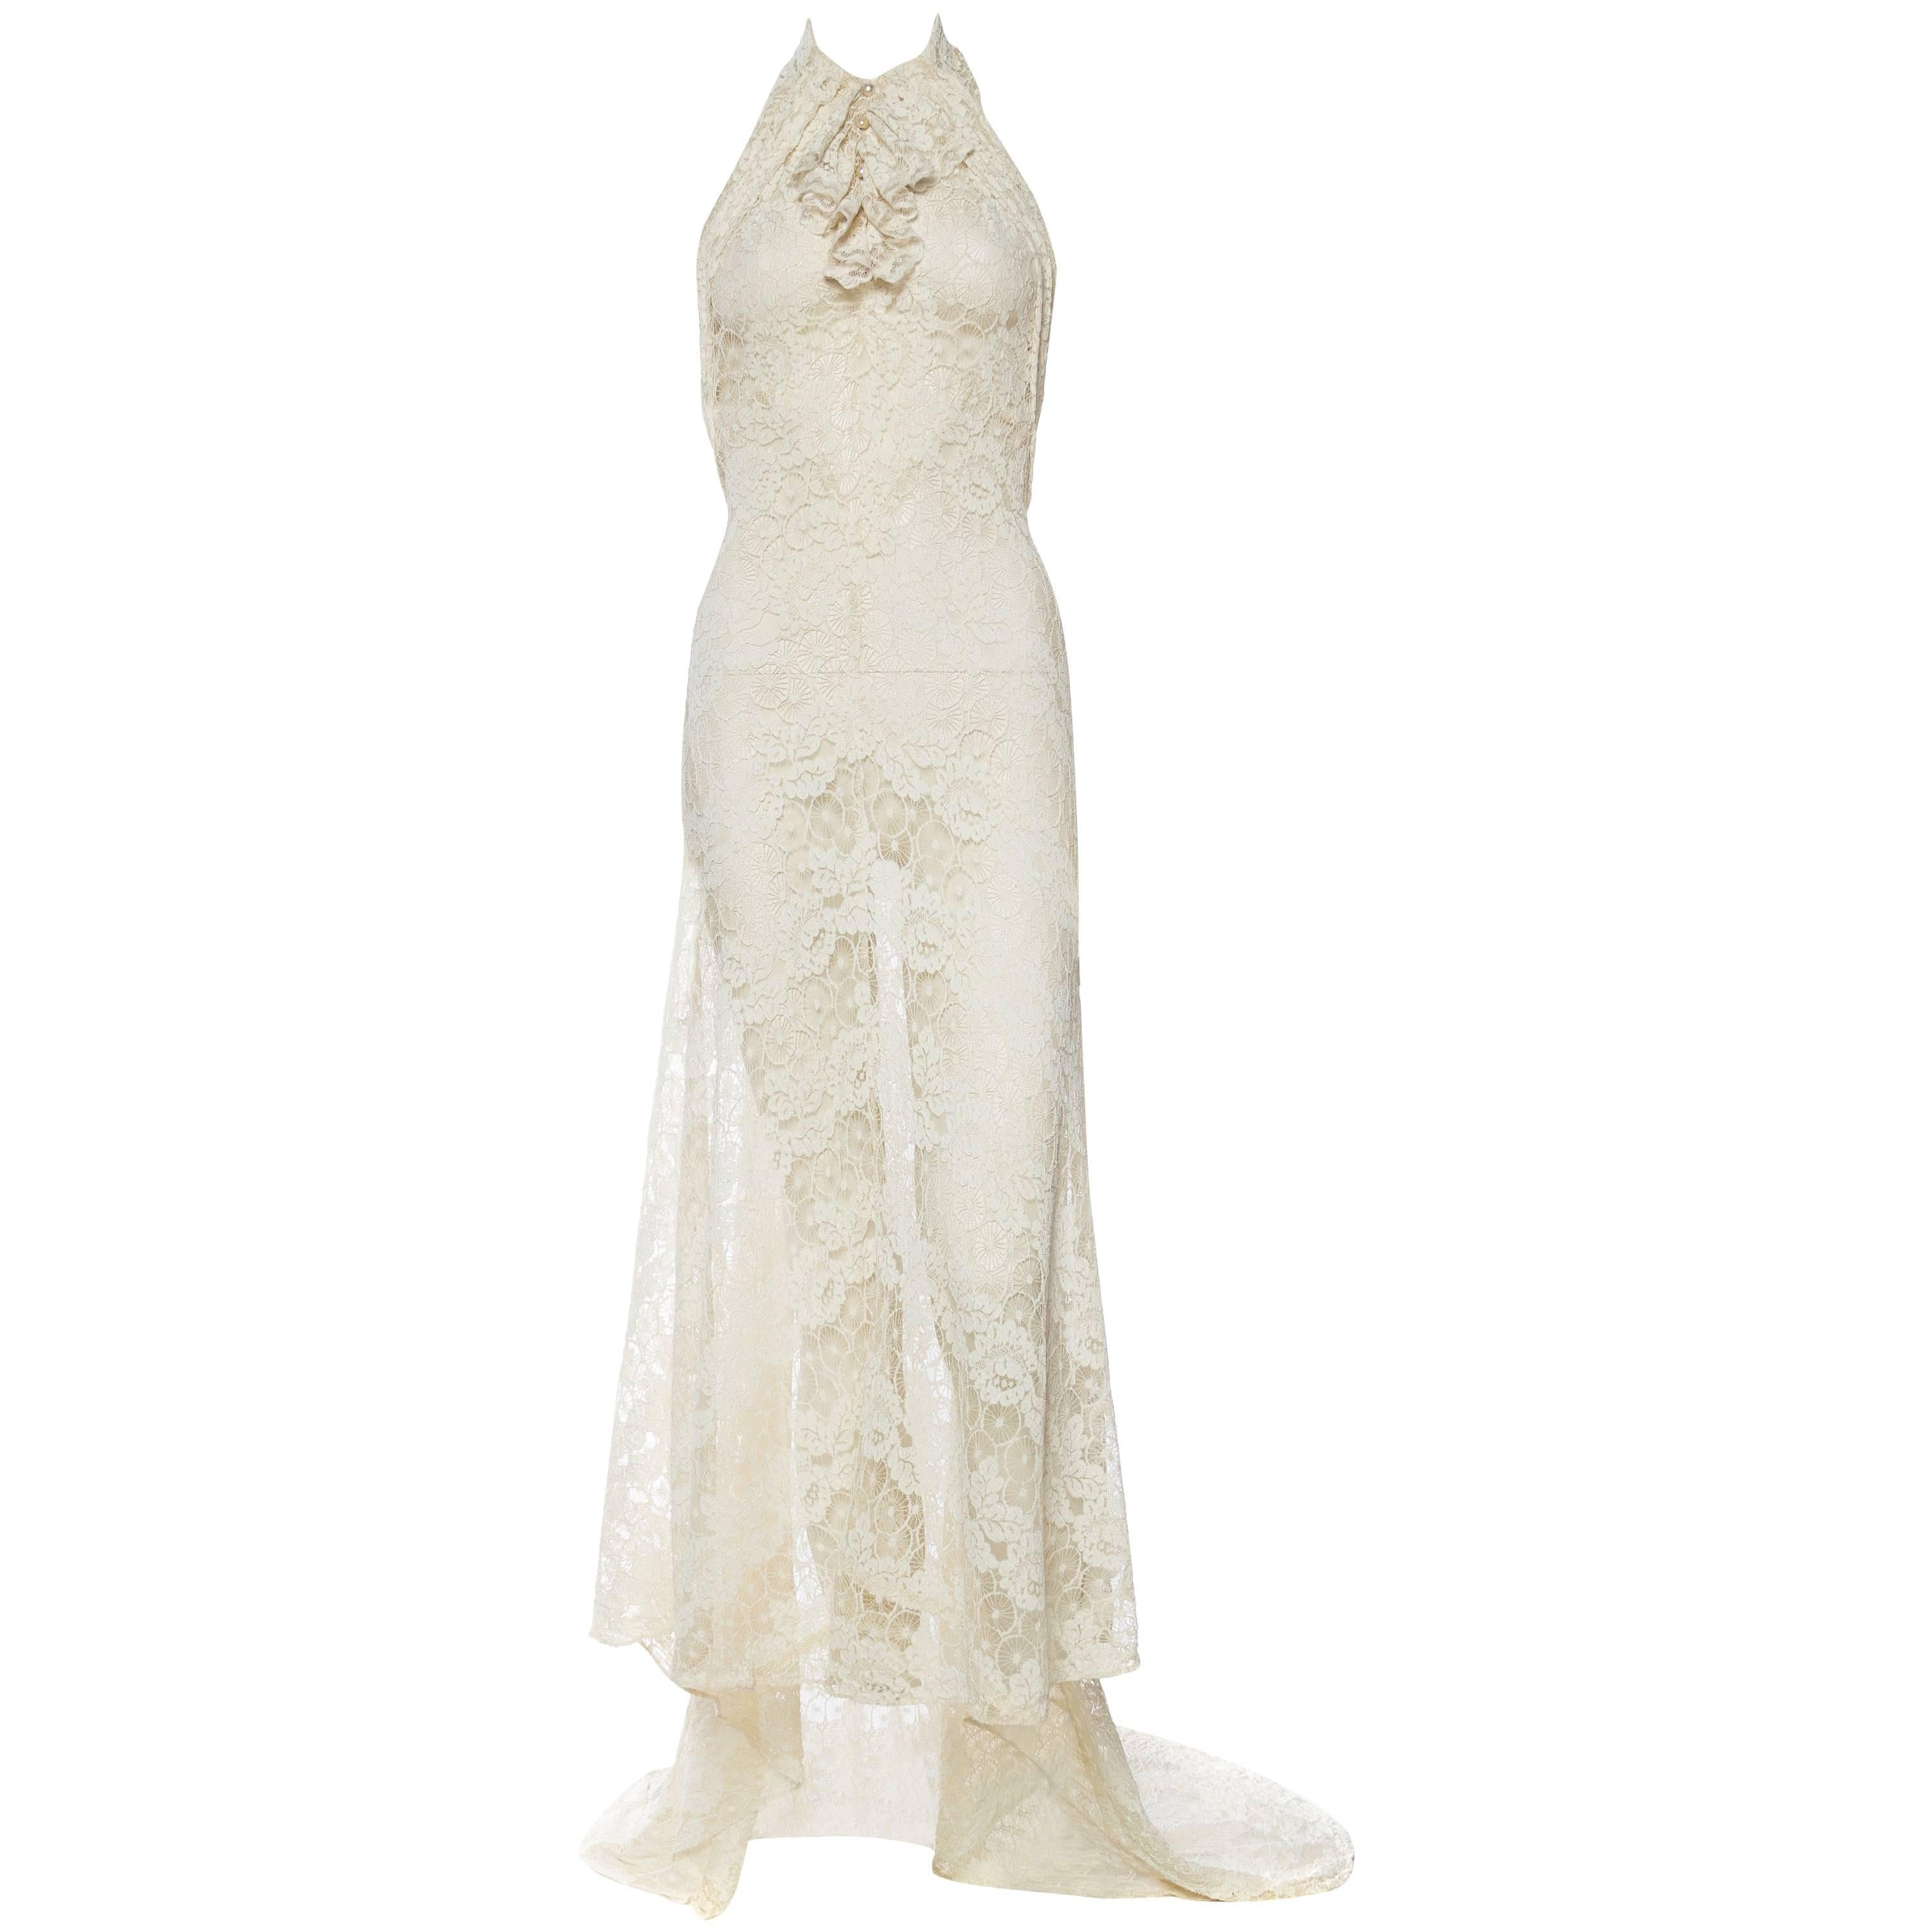 1930S Ivory Cobweb Lace Backless Halter Gown With Train